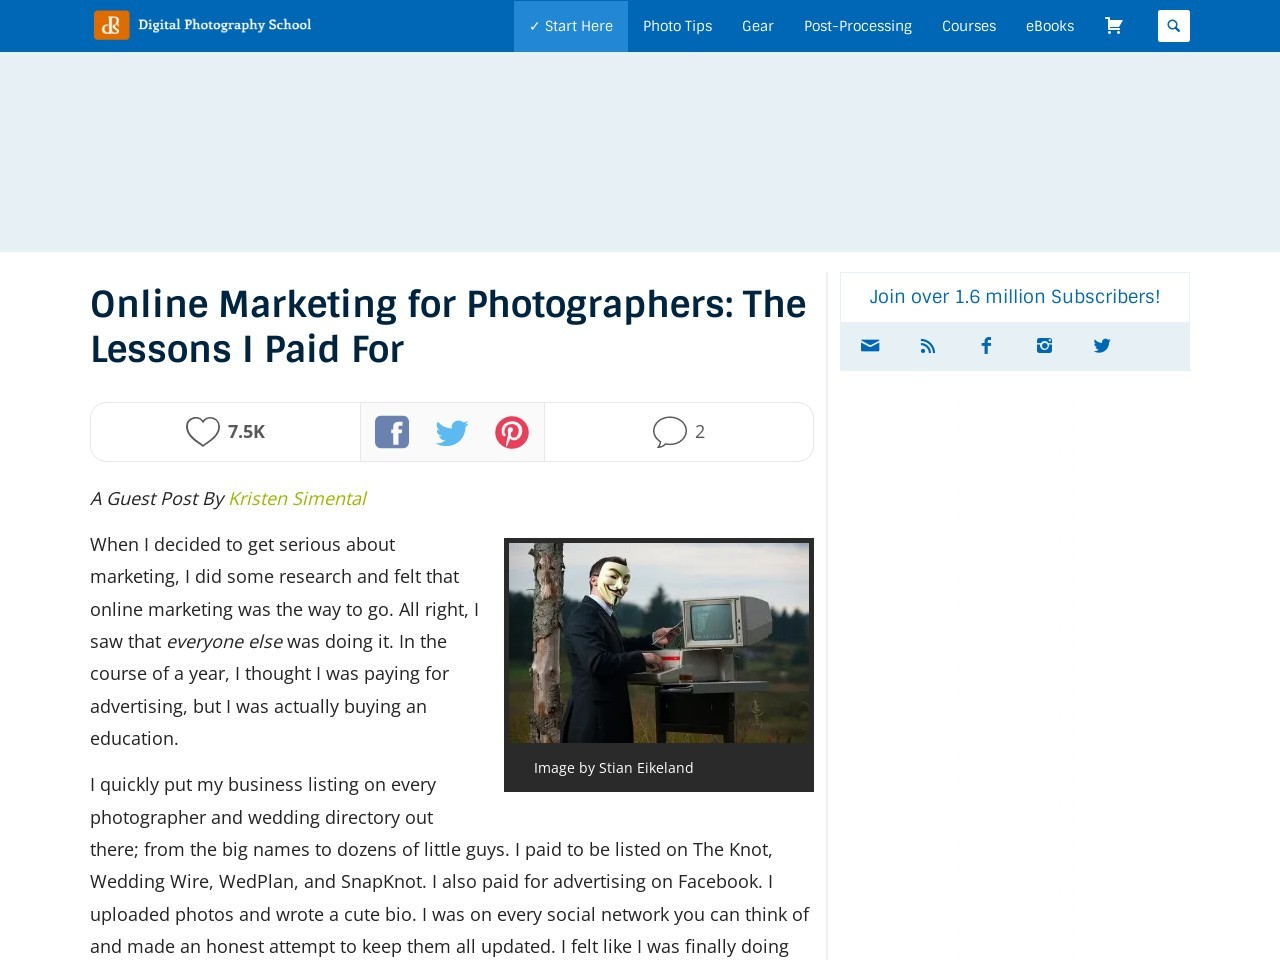 Online Marketing for Photographers: The Lessons I Paid For …